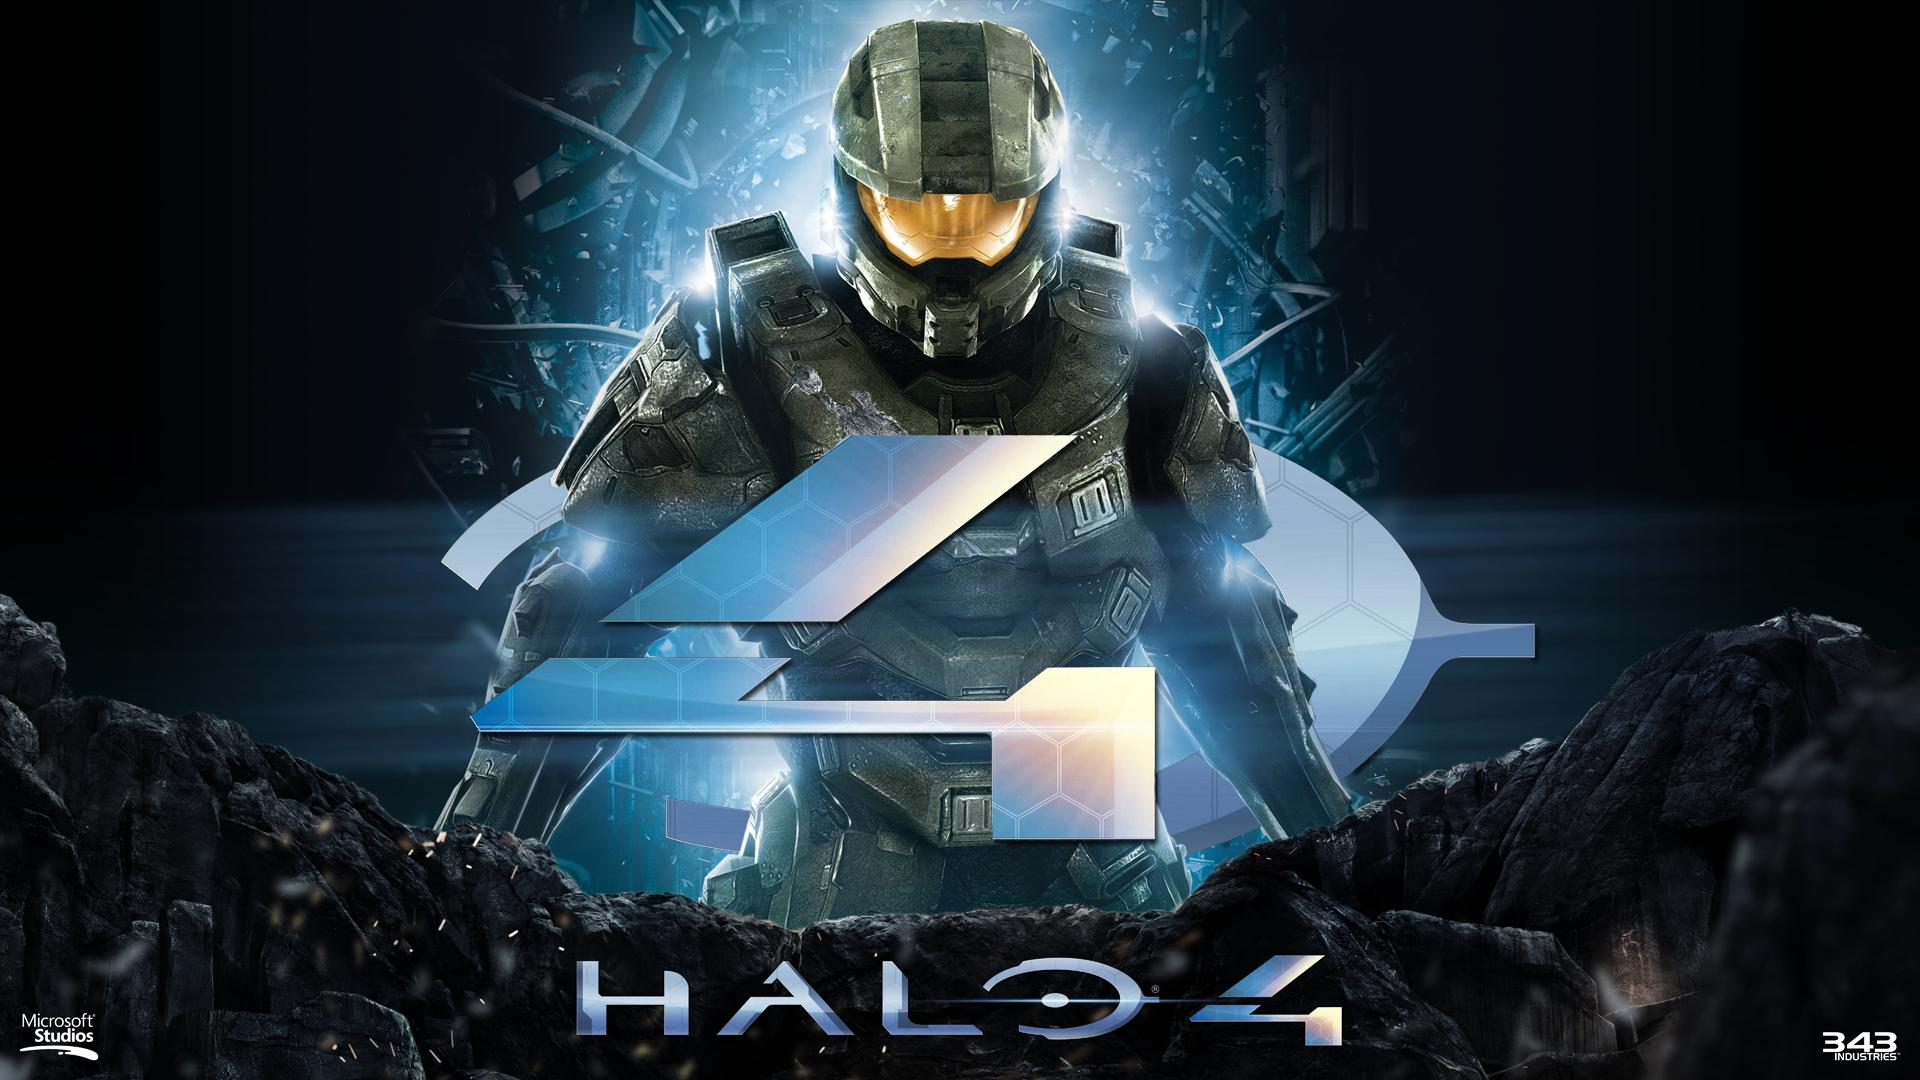 HQ Halo 4 Wallpapers | File 202.21Kb